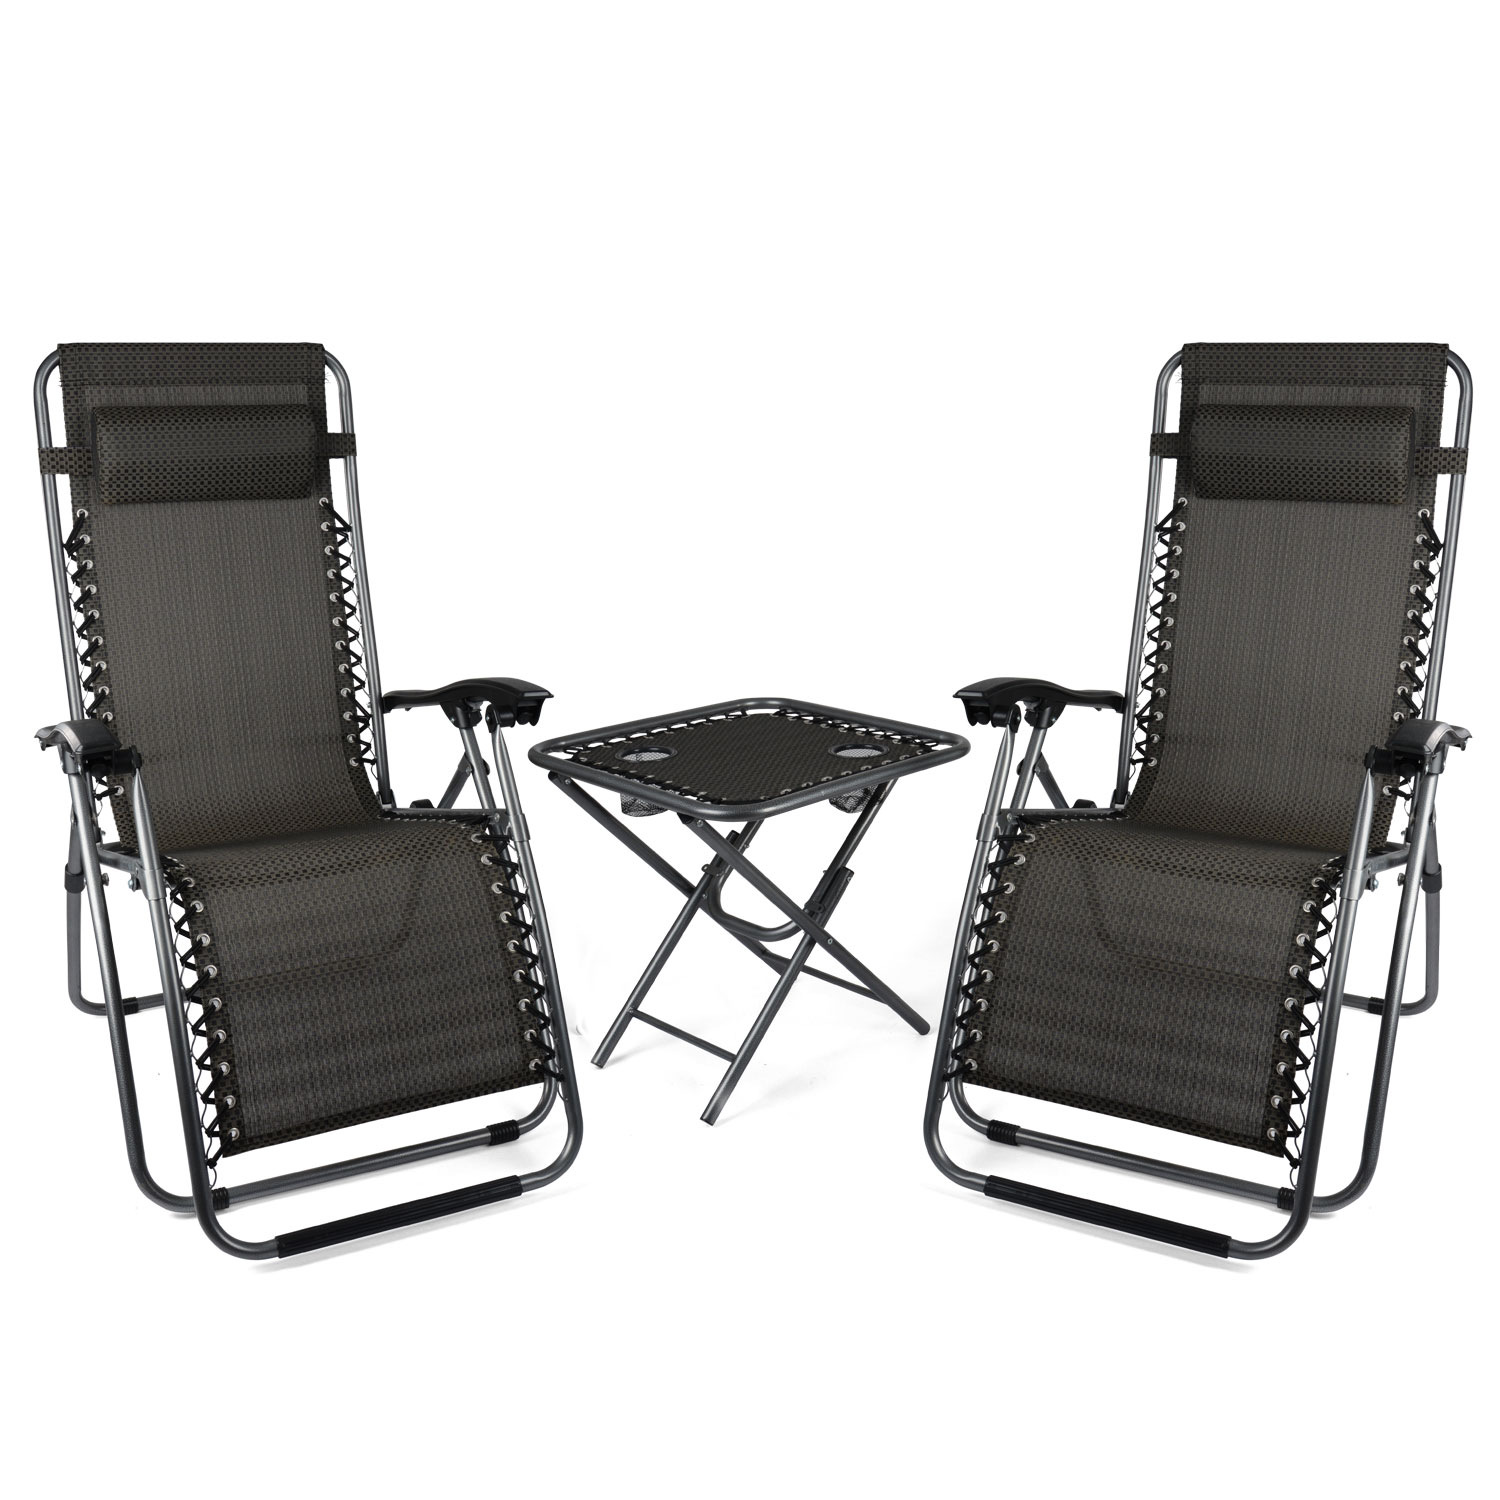 Image of Zero Gravity Chairs and Table Set - Black